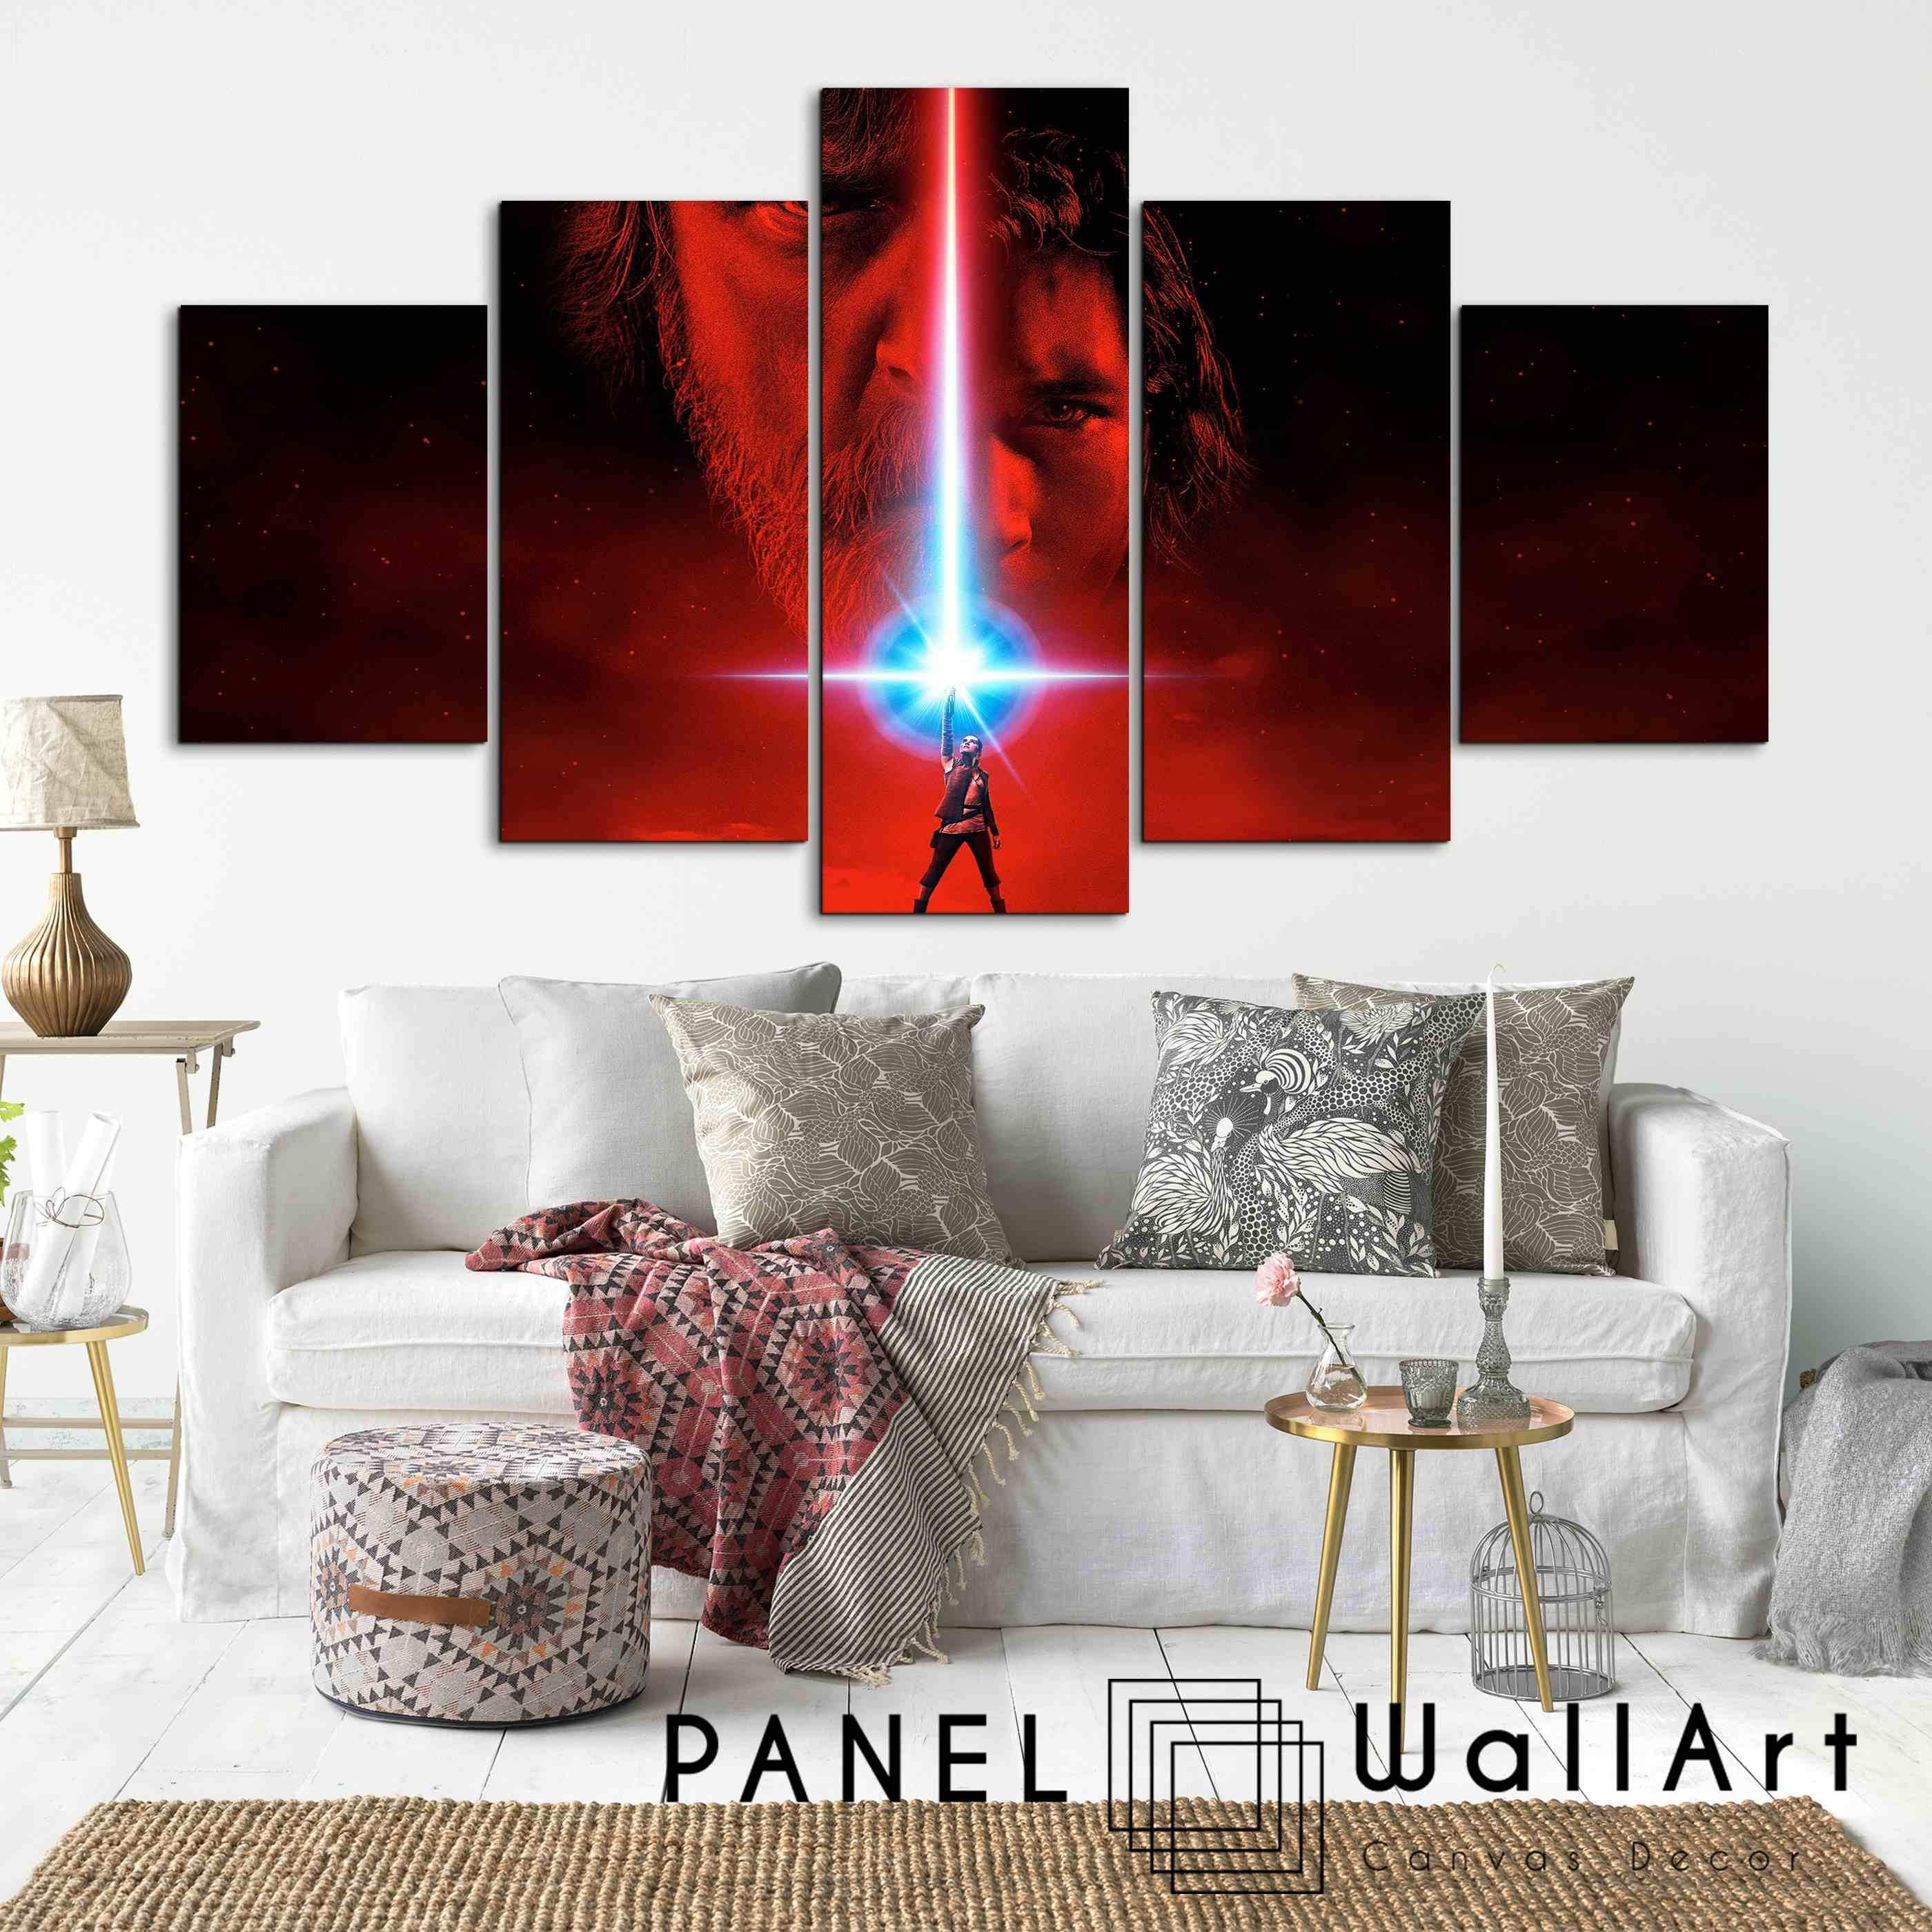 Star Wars The Last Jedi | Panel Wall Art  Panelwallart Within Most Current Panel Wall Art (Gallery 16 of 20)